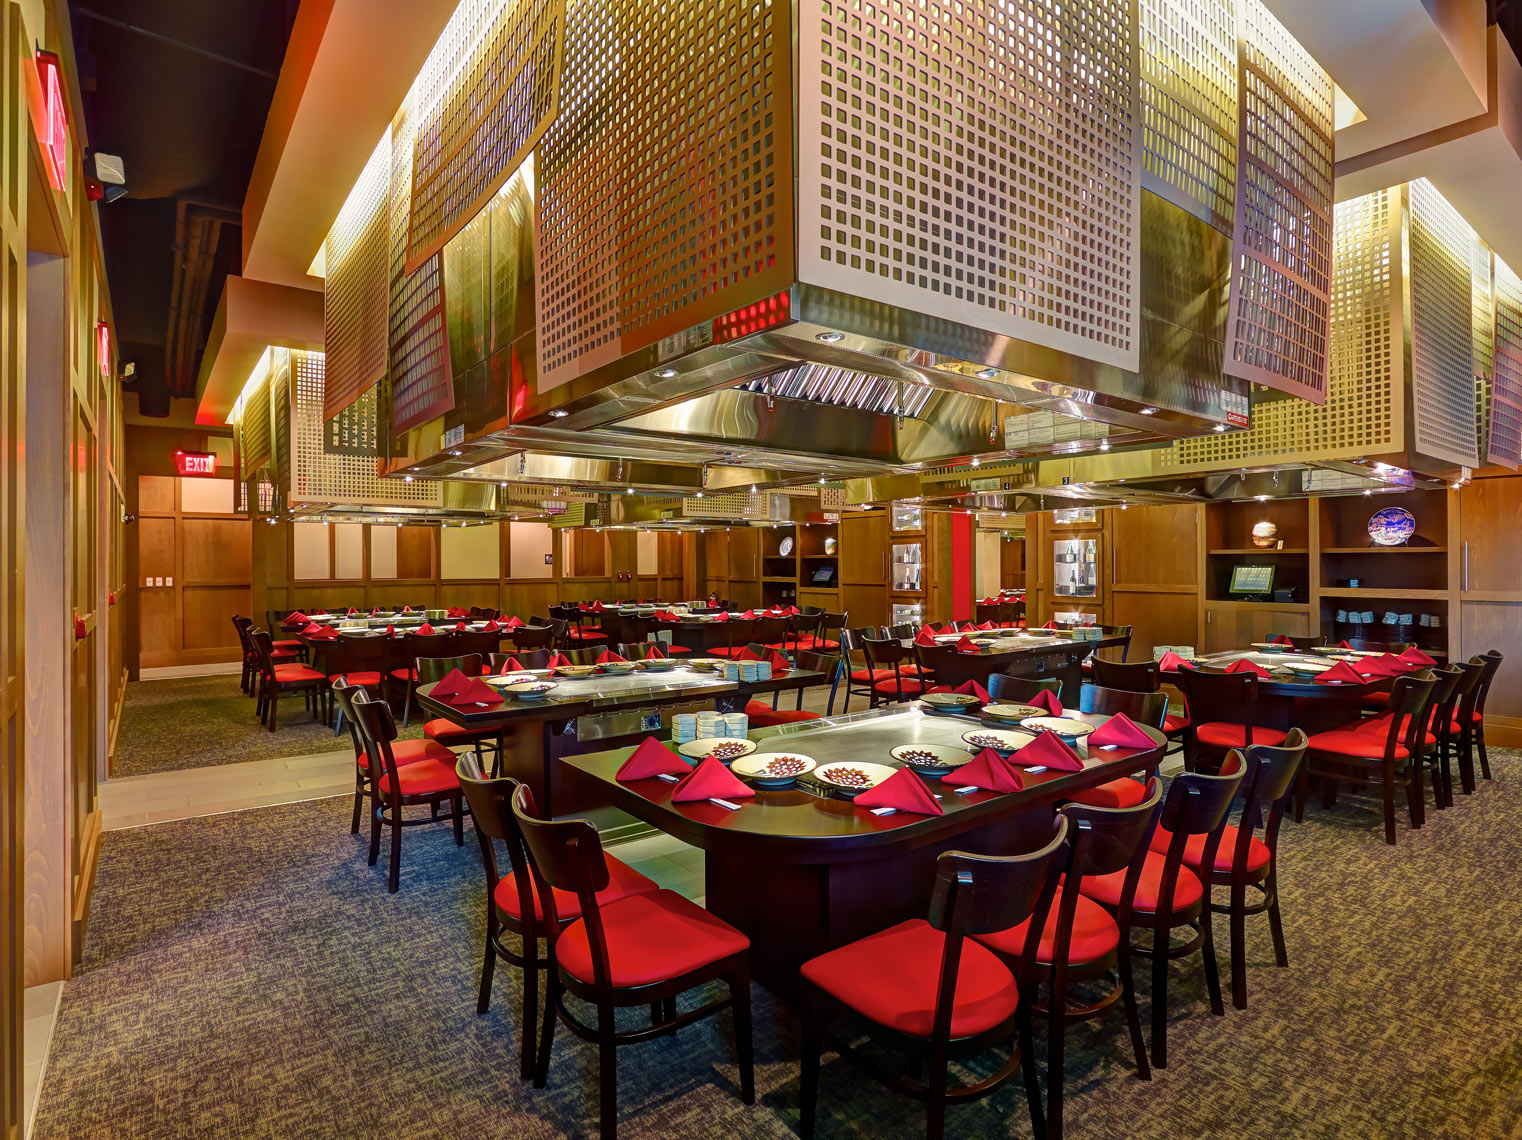 Benihana restaurant interior/silver vent hoods/architectural photo